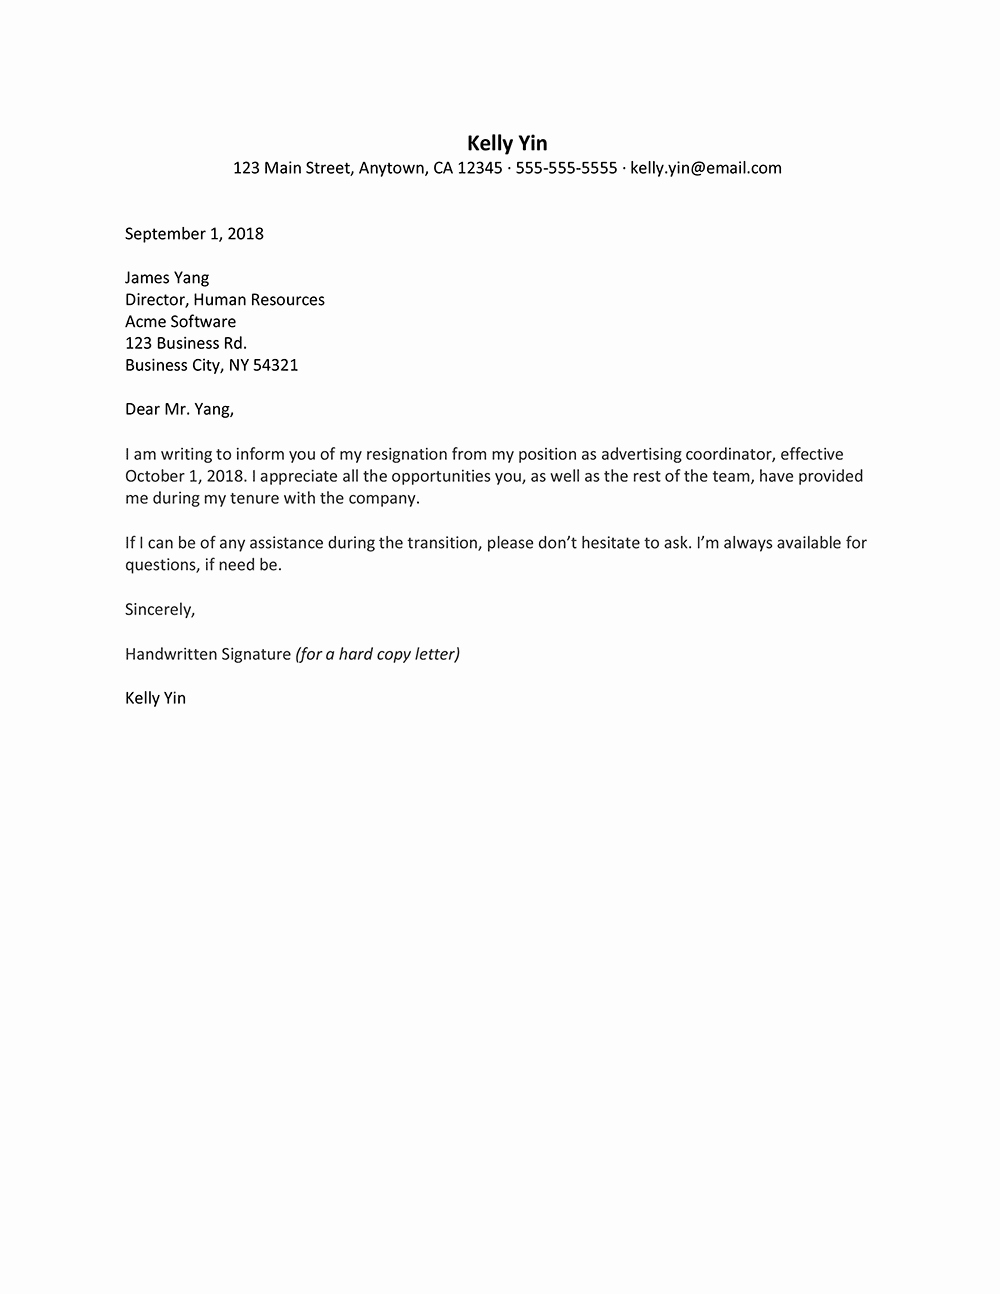 Letter Templates for Word New Resignation Letter Microsoft Word – Microsoft Word